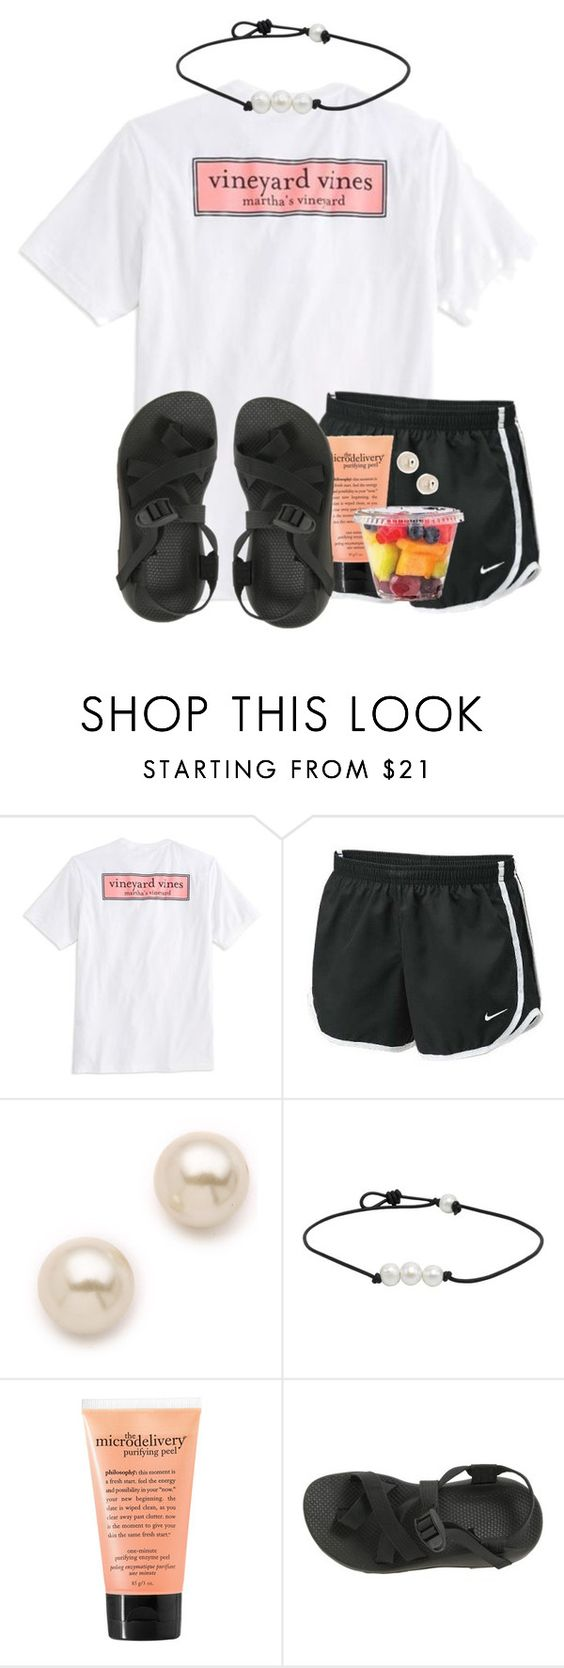 """""""im wonderstruck, blushing all the way home"""" by ellababy13 ❤ liked on Polyvore featuring мода, Vineyard Vines, NIKE, Juliet & Company, philosophy, Chaco и pearlwearinprepsauditions"""